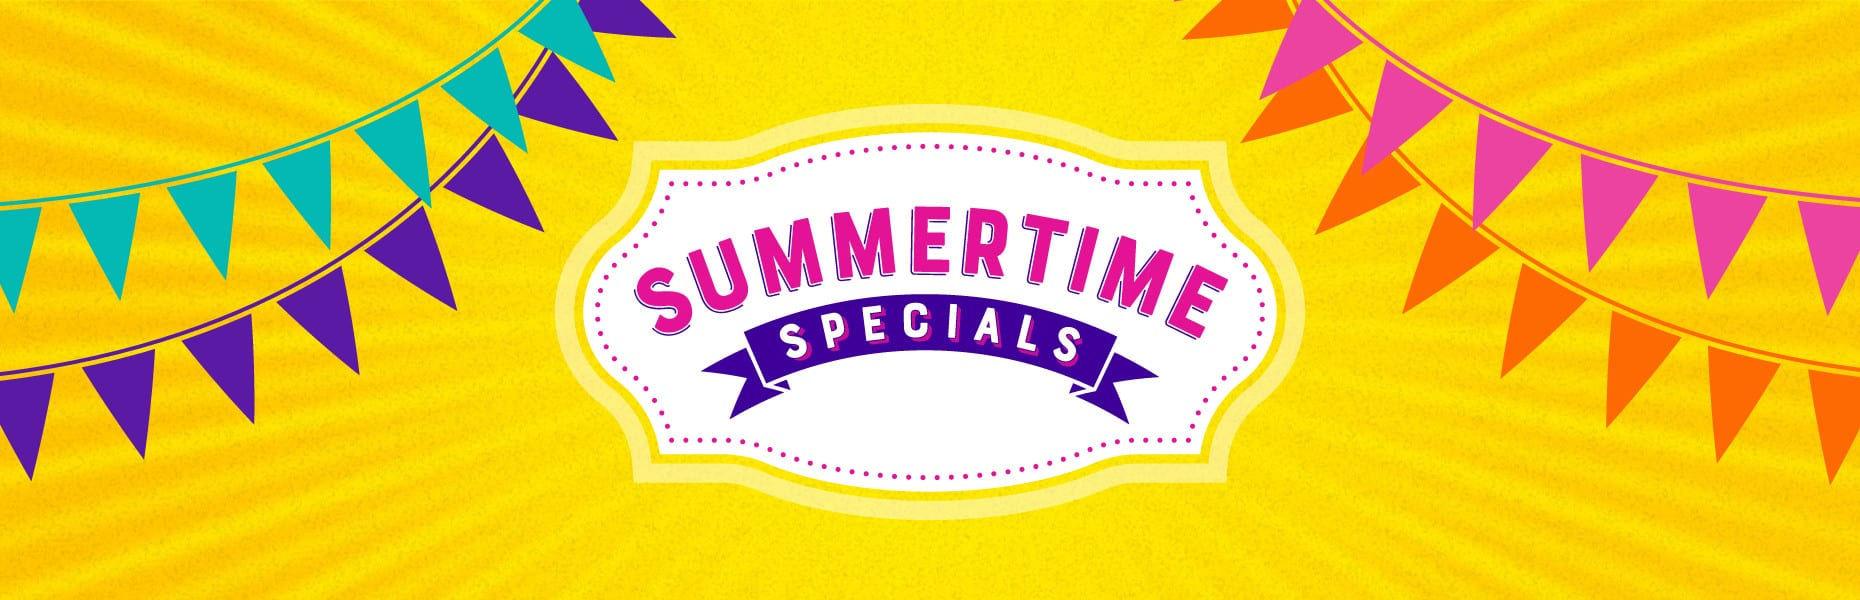 Davy's Summertime Specials